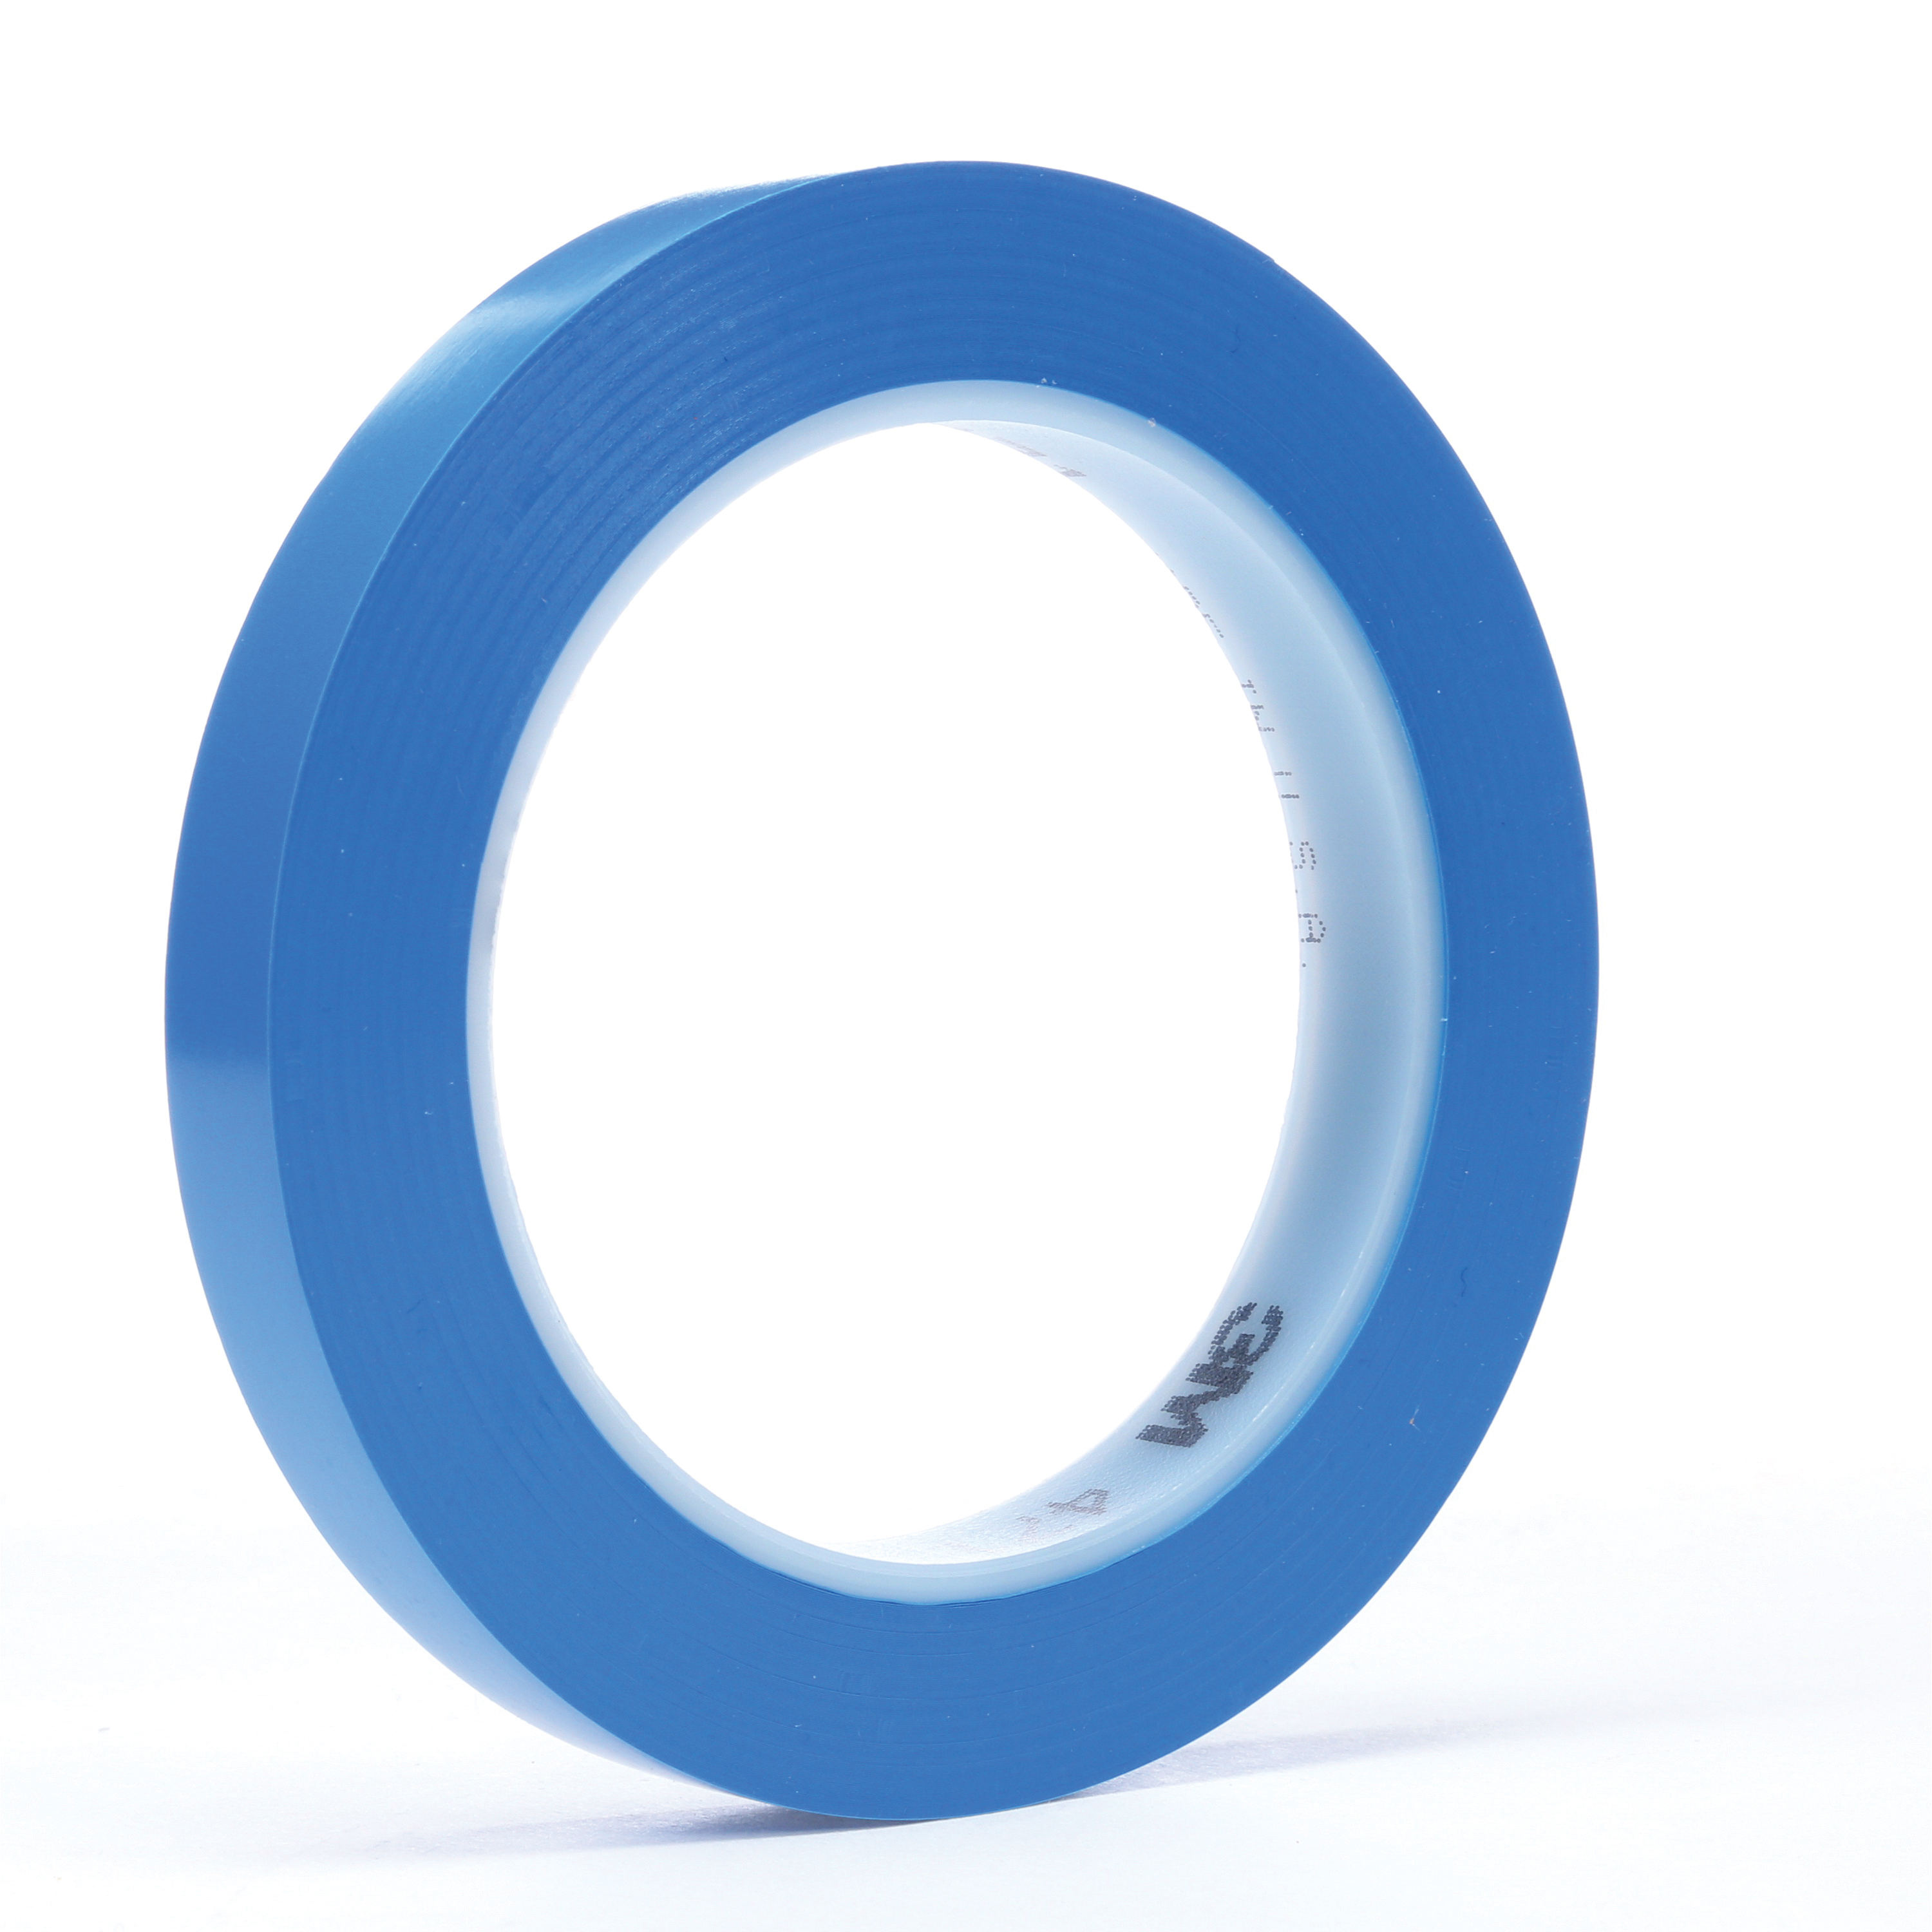 3M™ 021200-03120 High Performance Vinyl Tape, 36 yd L x 3/4 in W, 5.2 mil THK, Rubber Adhesive, Vinyl Backing, Blue